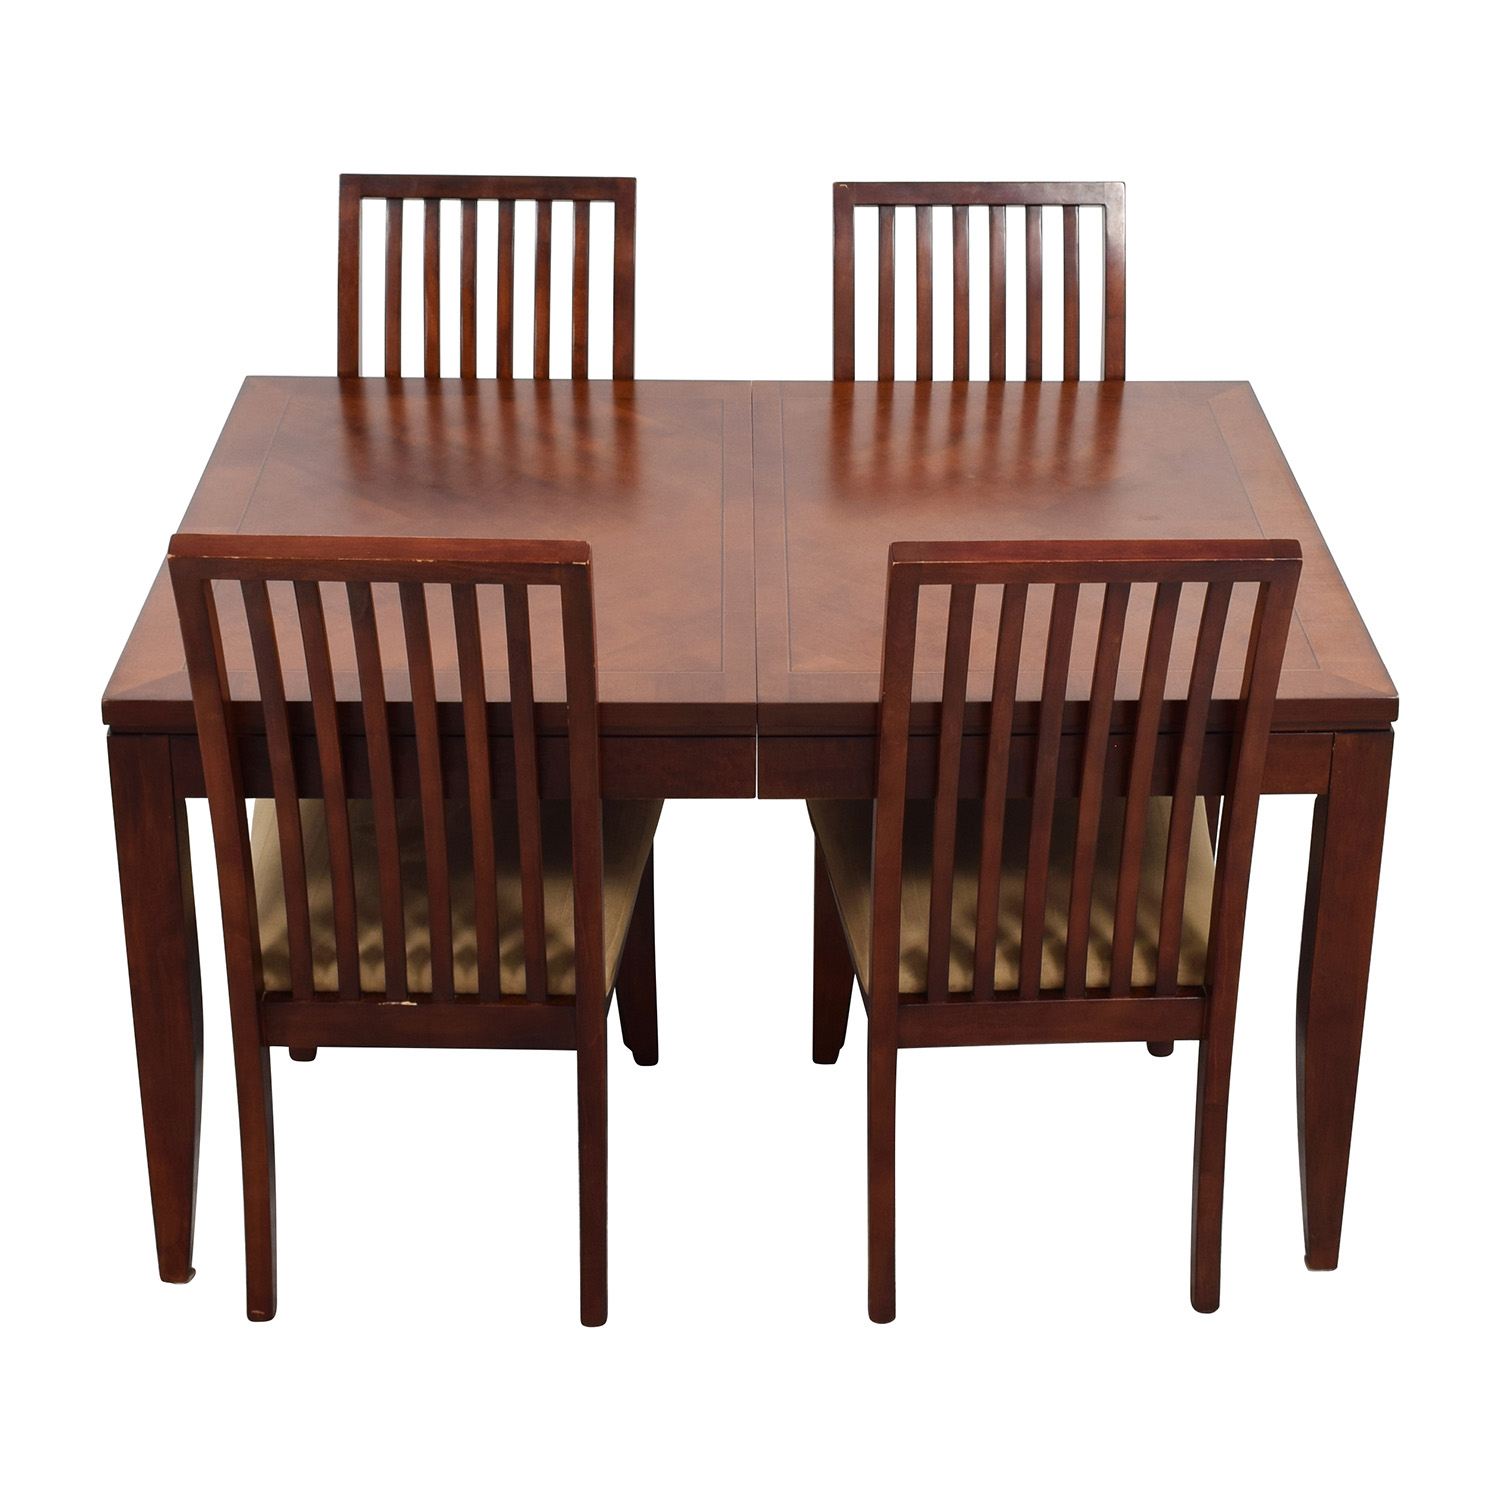 Macy's Macy's Metropolitan Dining Set with Four Chairs nj